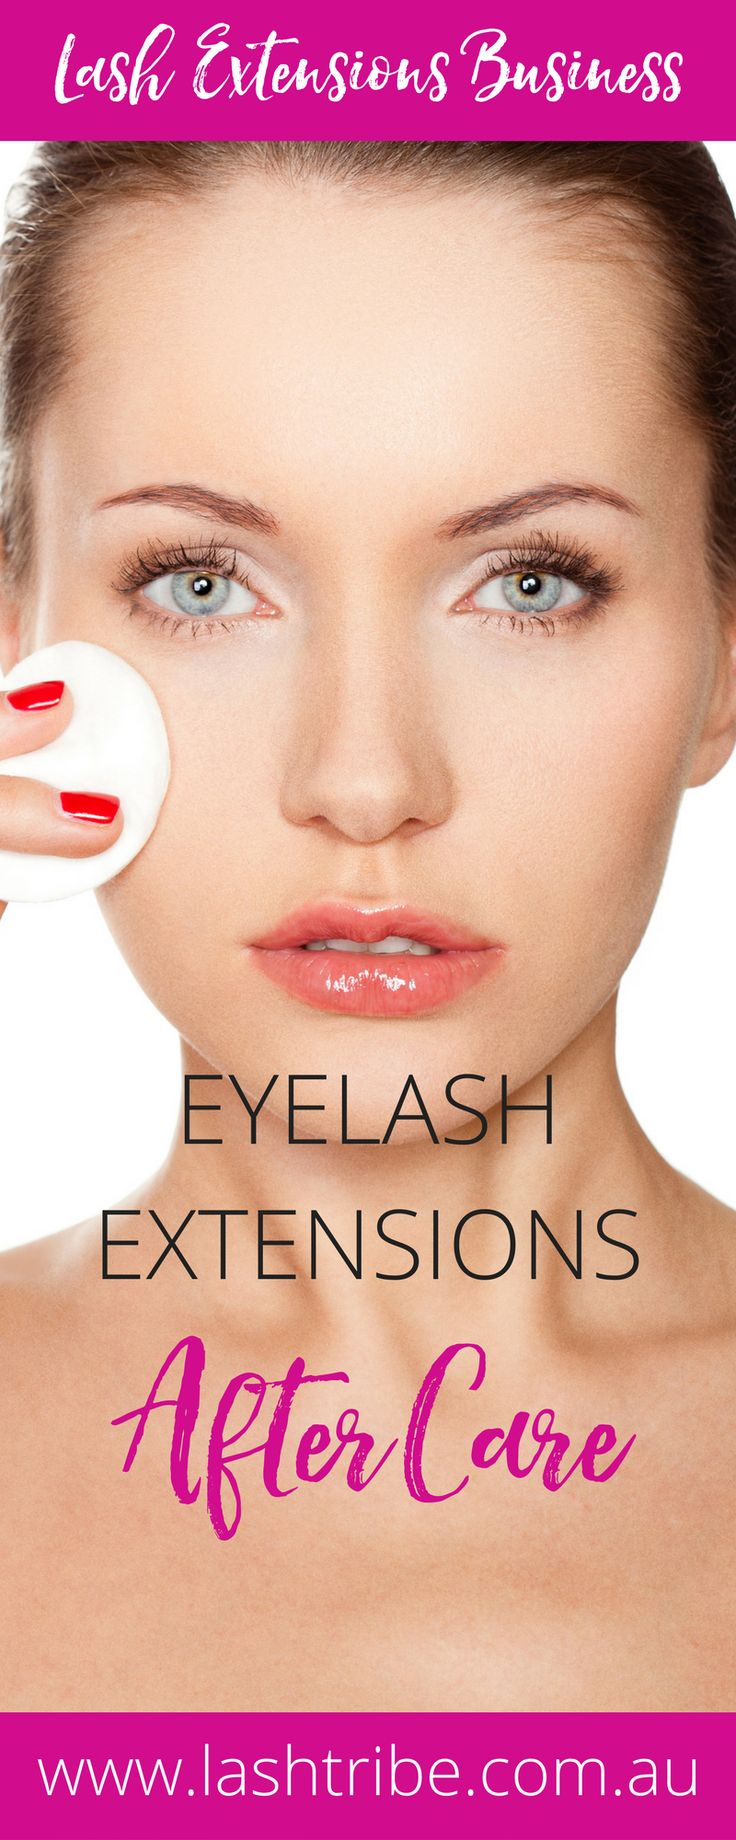 Eyelash Extensions After Care Video Tutorial | Not cleaning your lashes will result in oiliness, residue, dirt and grime build up in your lashes which will break down the lash glue. Oils and Lash glue don?t like each other. Learn more at http://lashtribe.com.au/2017/01/27/how-to-clean-your-eyelash-extensions/ | How to Clean Your Eyelash Extensions | Lashes Care Tips